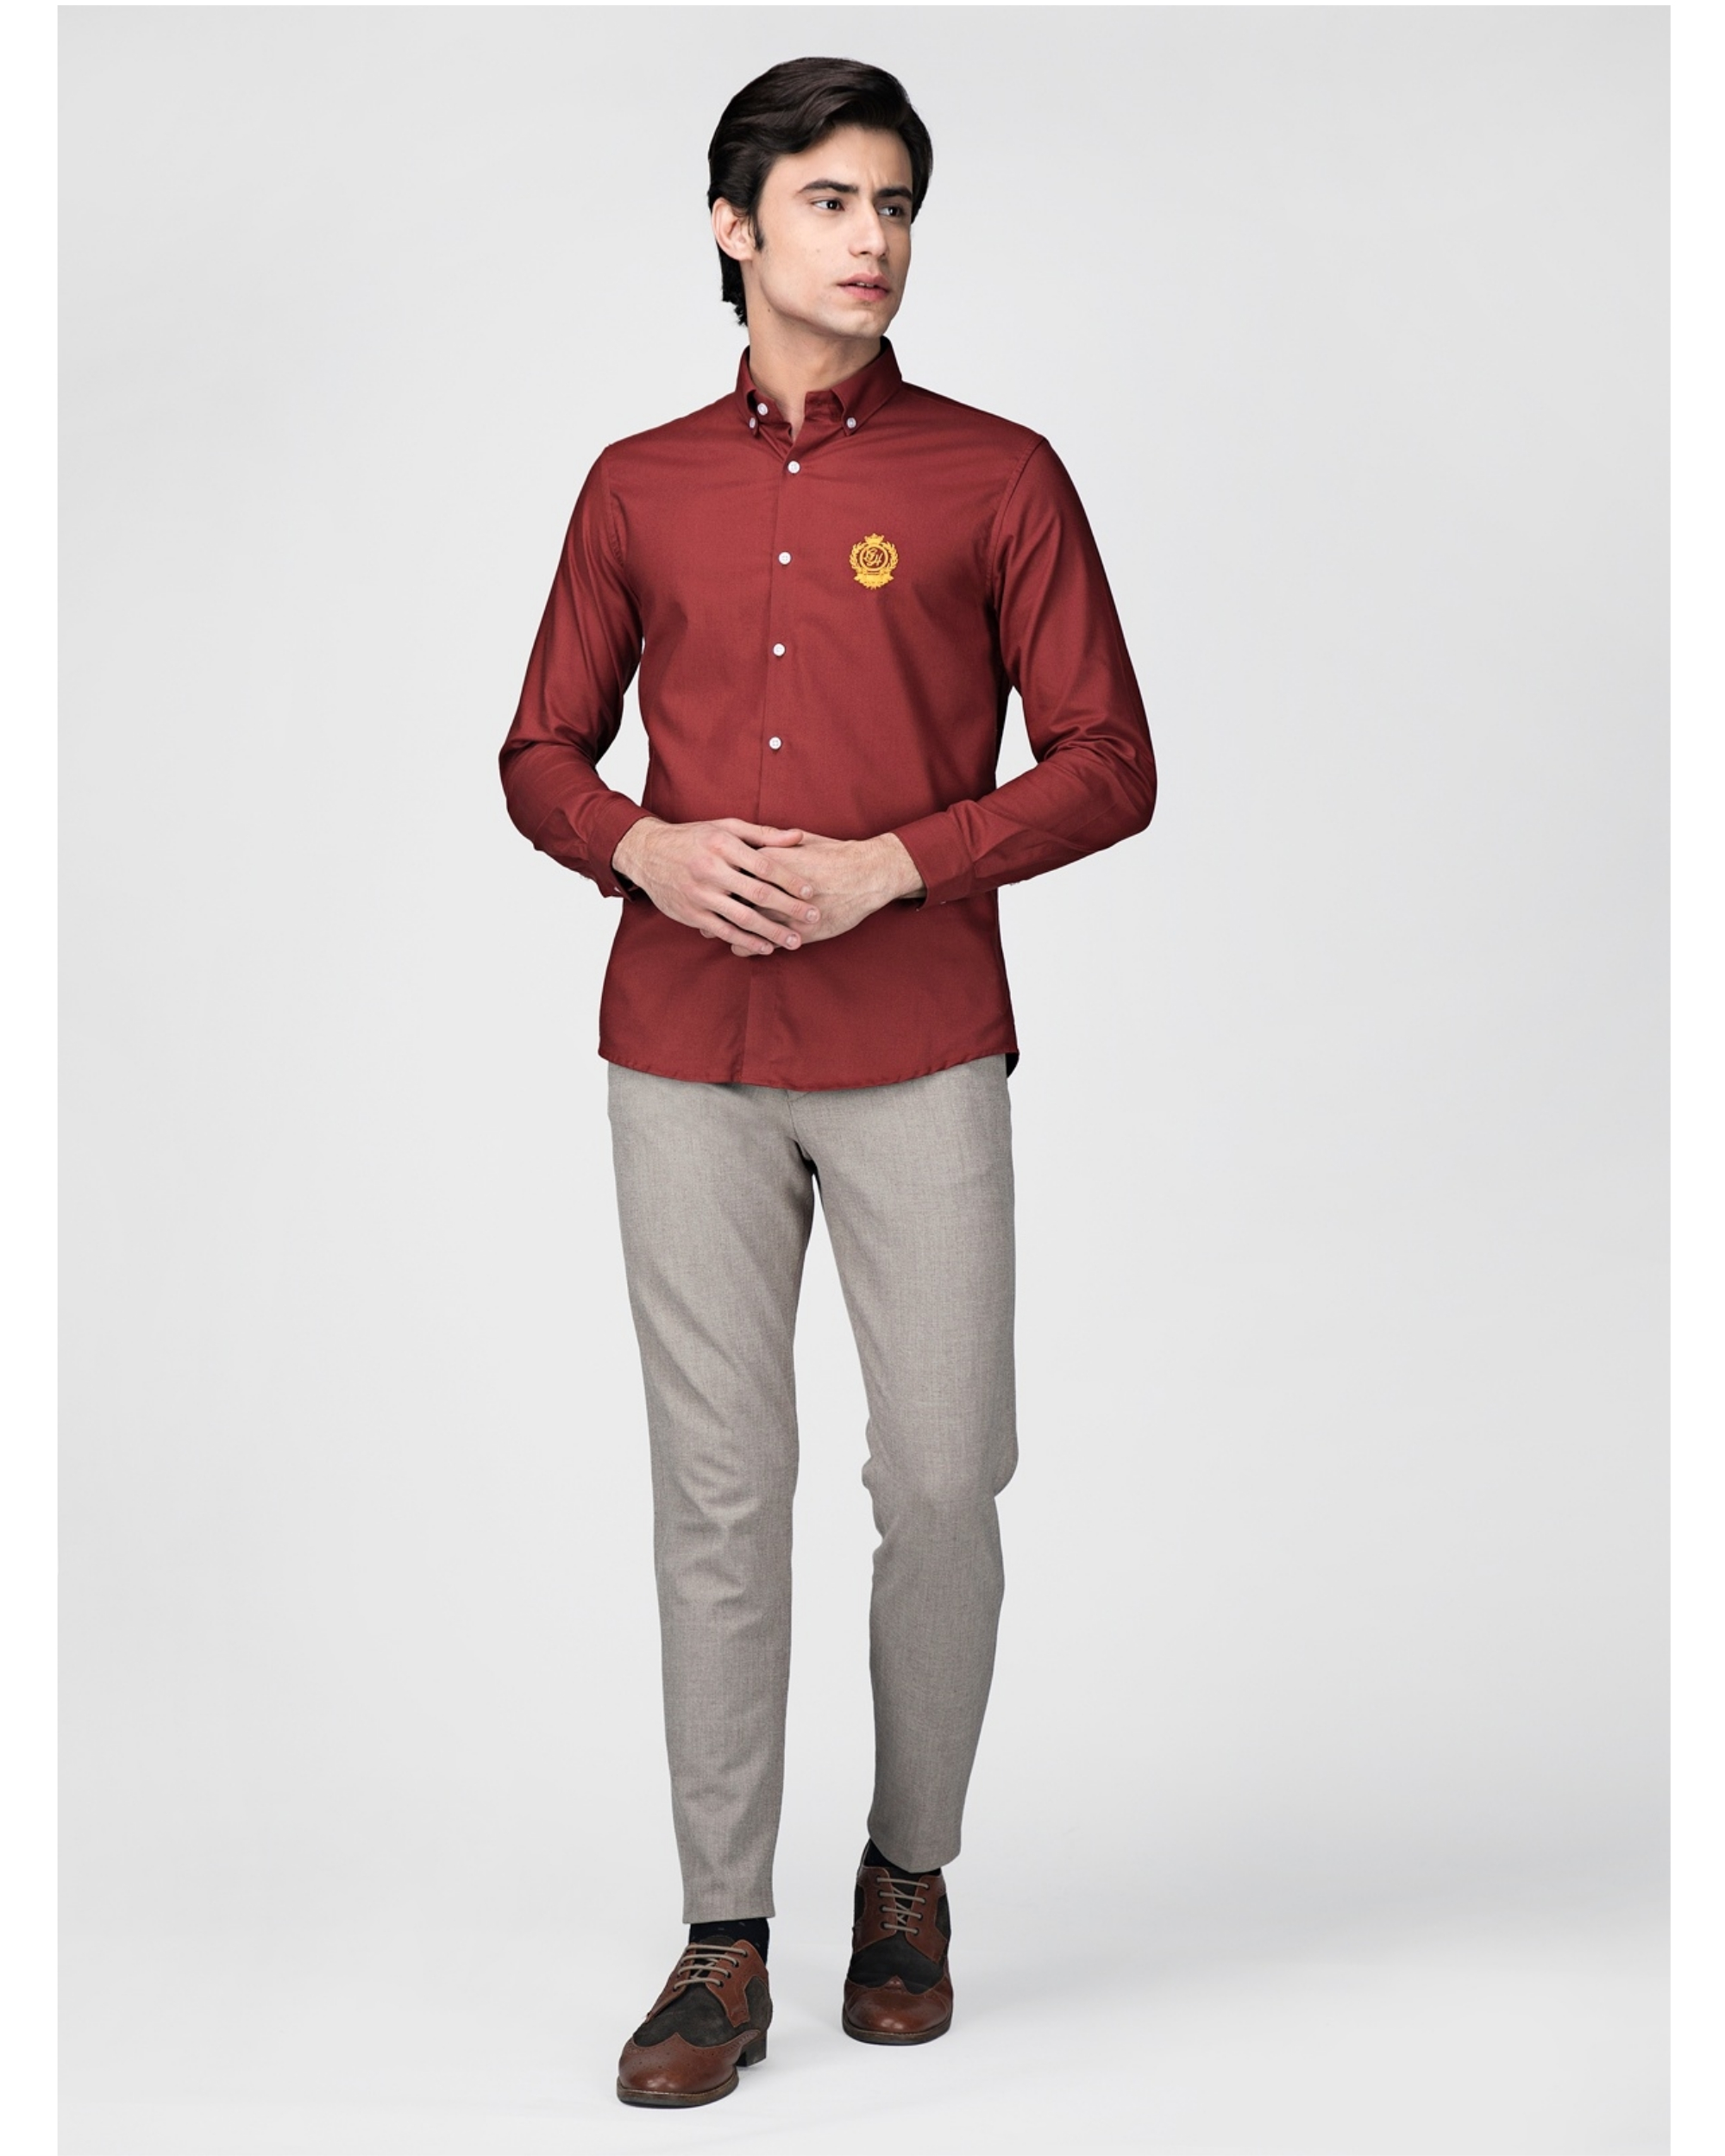 Red oxford embroidered shirt